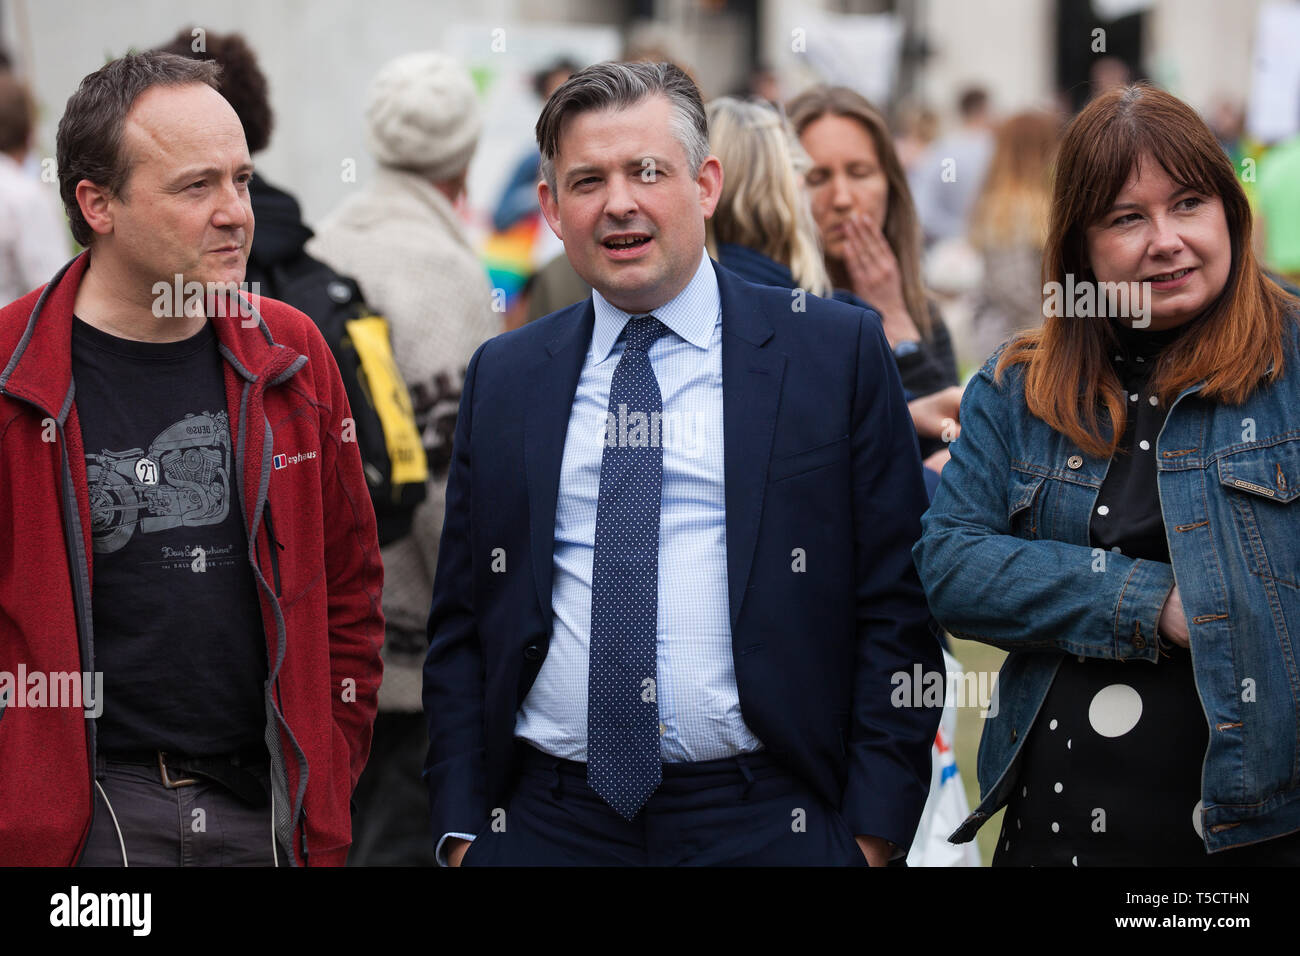 London, UK. 23rd April 2019. Jon Ashworth MP, Shadow Health Minister, prepares to address climate change activists from Extinction Rebellion at an assembly in Parliament Square prior to an attempt to deliver to Parliament activists' letters requesting meetings to discuss climate change with their Members of Parliament. Credit: Mark Kerrison/Alamy Live News - Stock Image